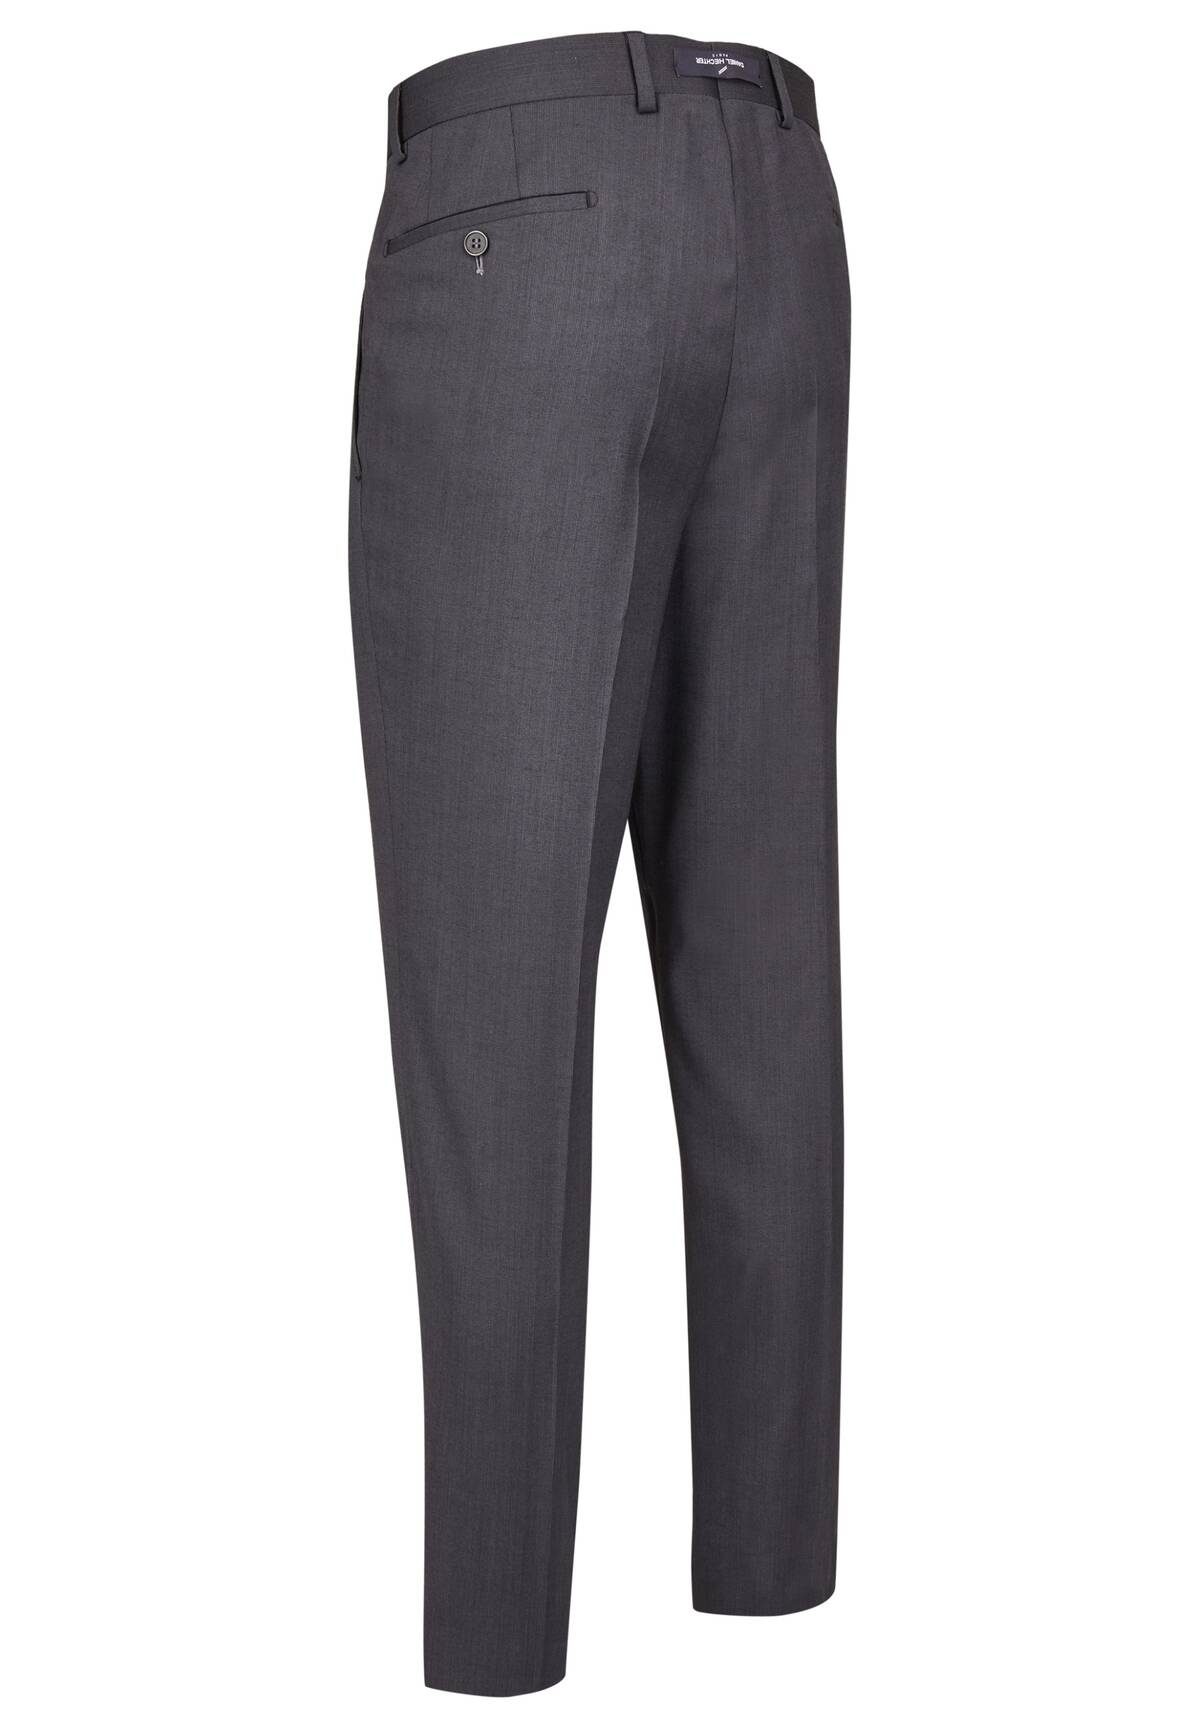 Mix & Match Anzug Hose 100112 Modern Fit / TROUSERS NOS MODERN